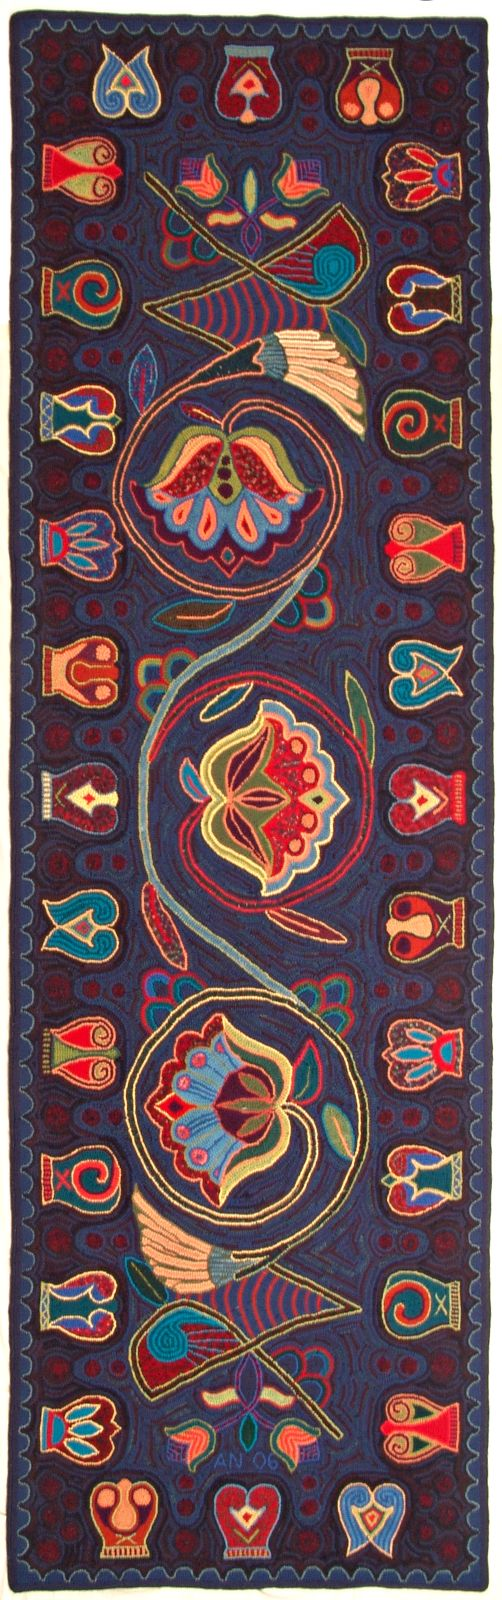 Astrid's Handmade Rugs. 30 square feet  Old Norse inspired floral design.i want this in my house, NOW! Love those colors!